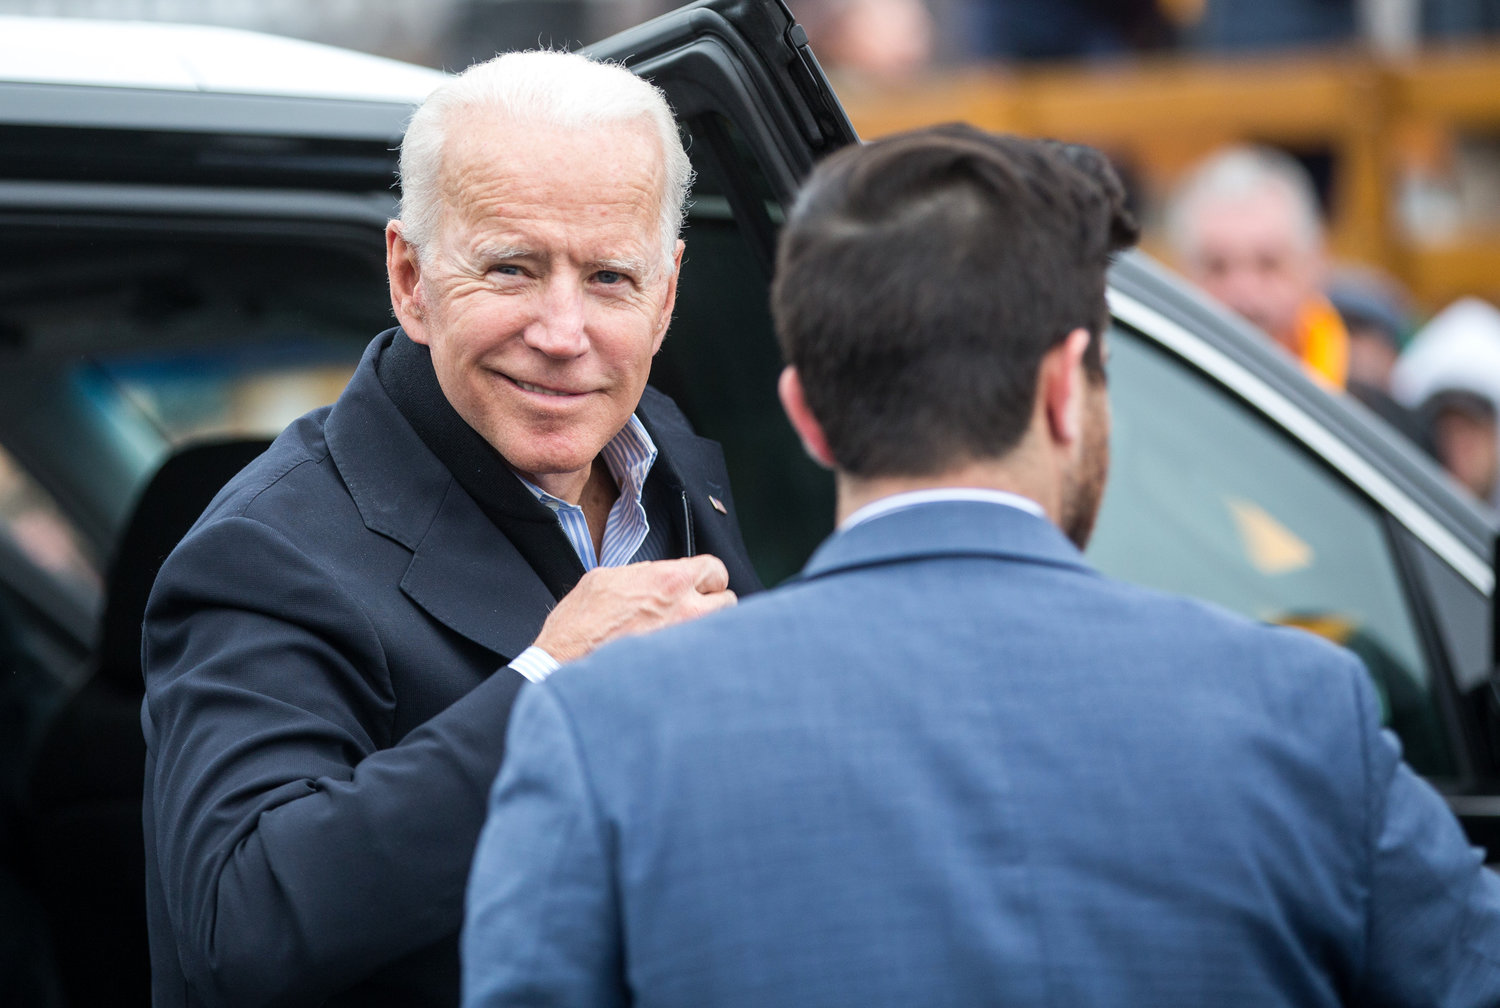 Former Vice President Joe Biden arrives in front of a Stop & Shop in support of striking union workers on April 18, in Dorchester, Massachusetts.